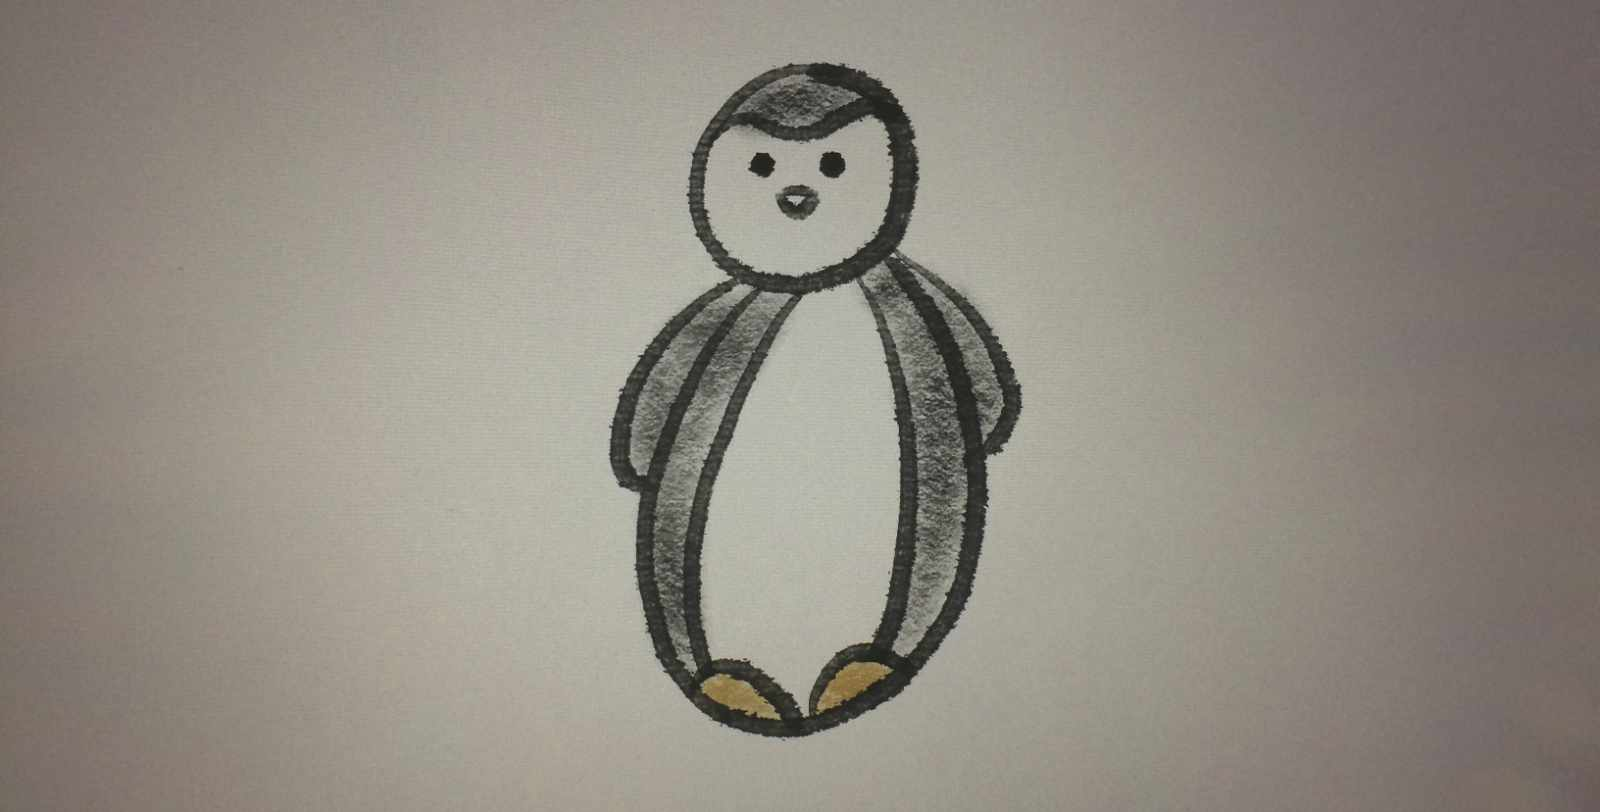 Peter the Penguin Sketch - Learning Procreate Introduction with Artist Sophie Lawson